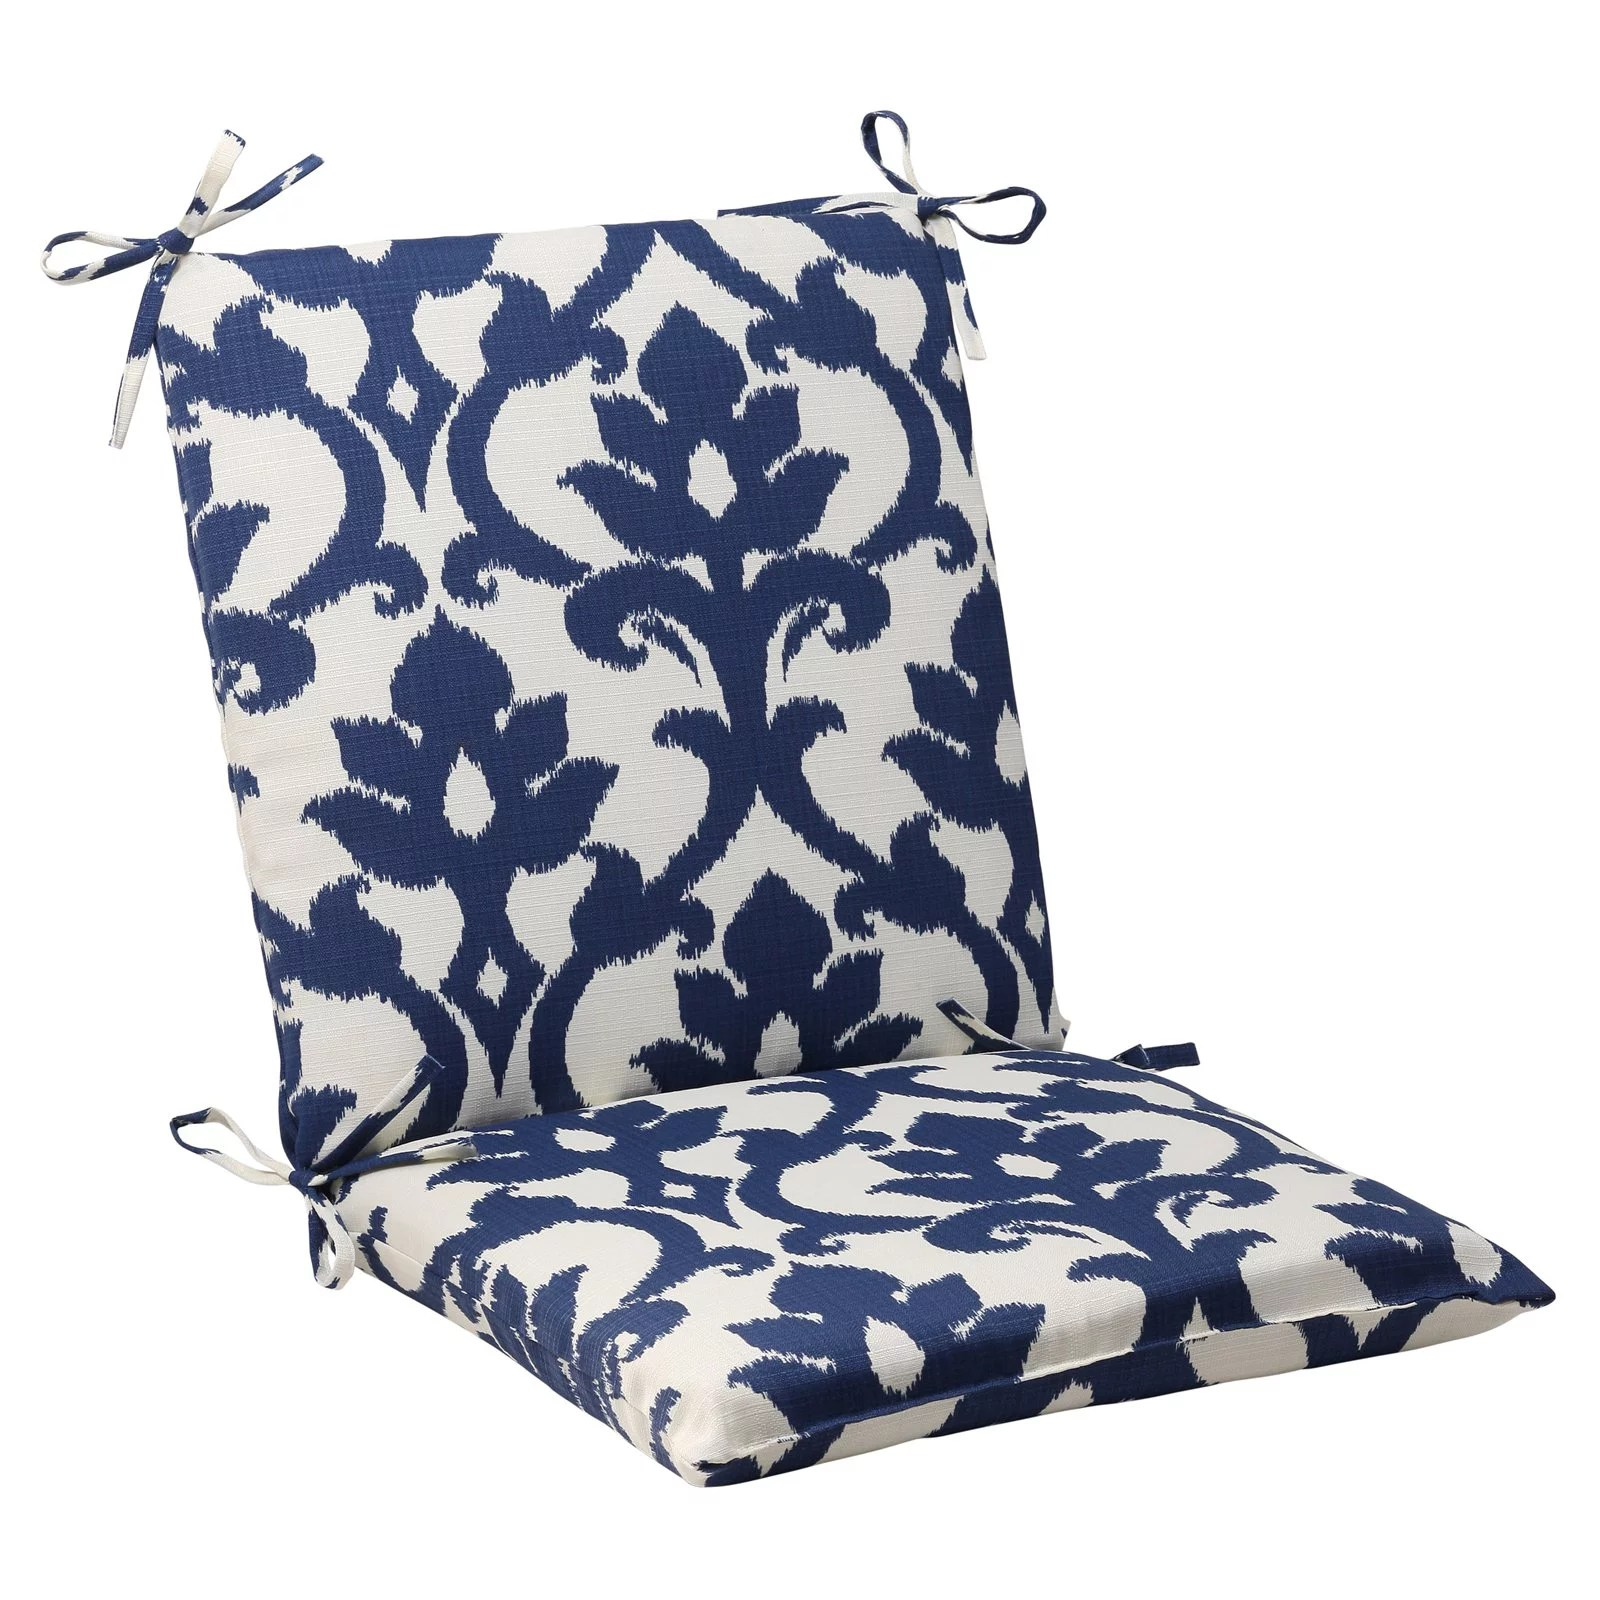 Patio Chair Cushions Cheap Pillow Perfect Outdoor Indoor Bosco Navy Squared Corners Chair Cushion